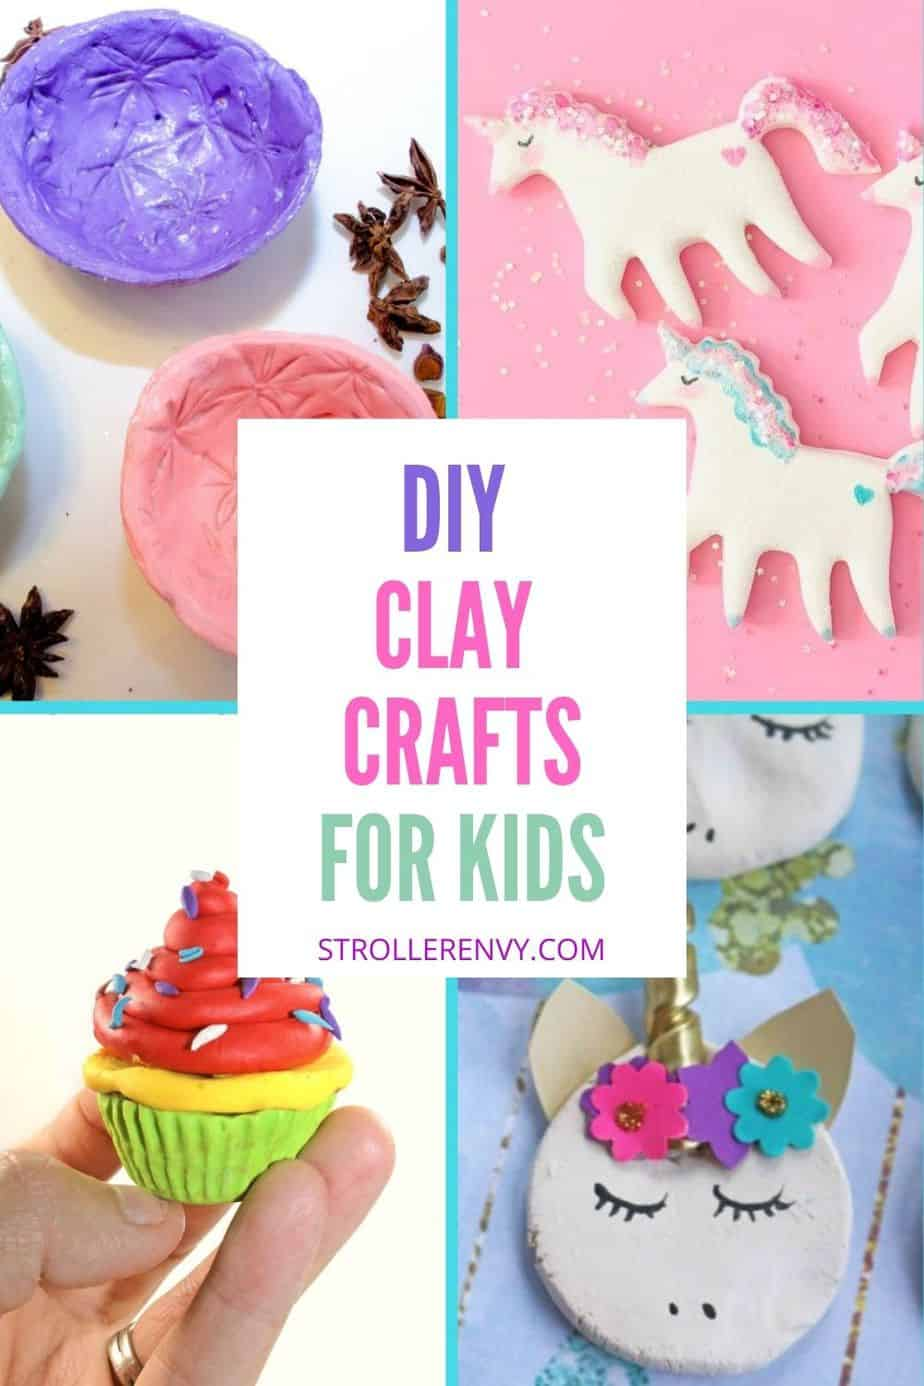 clay crafts collage with text overlay